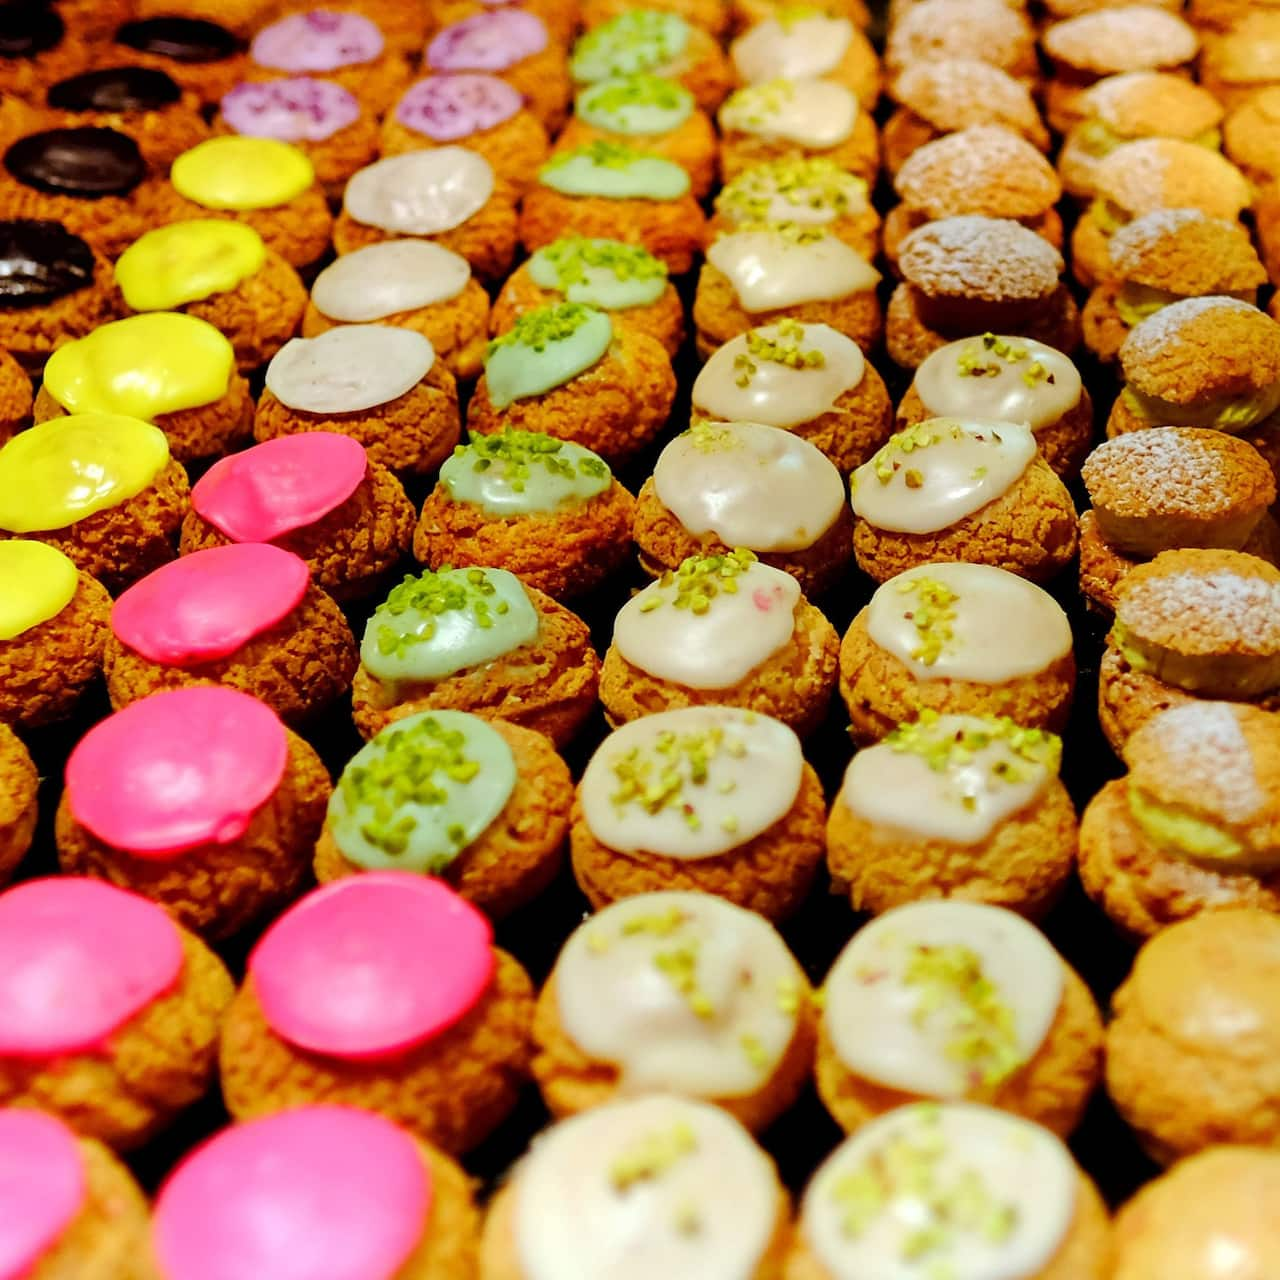 Rows of colorful French éclair pastries